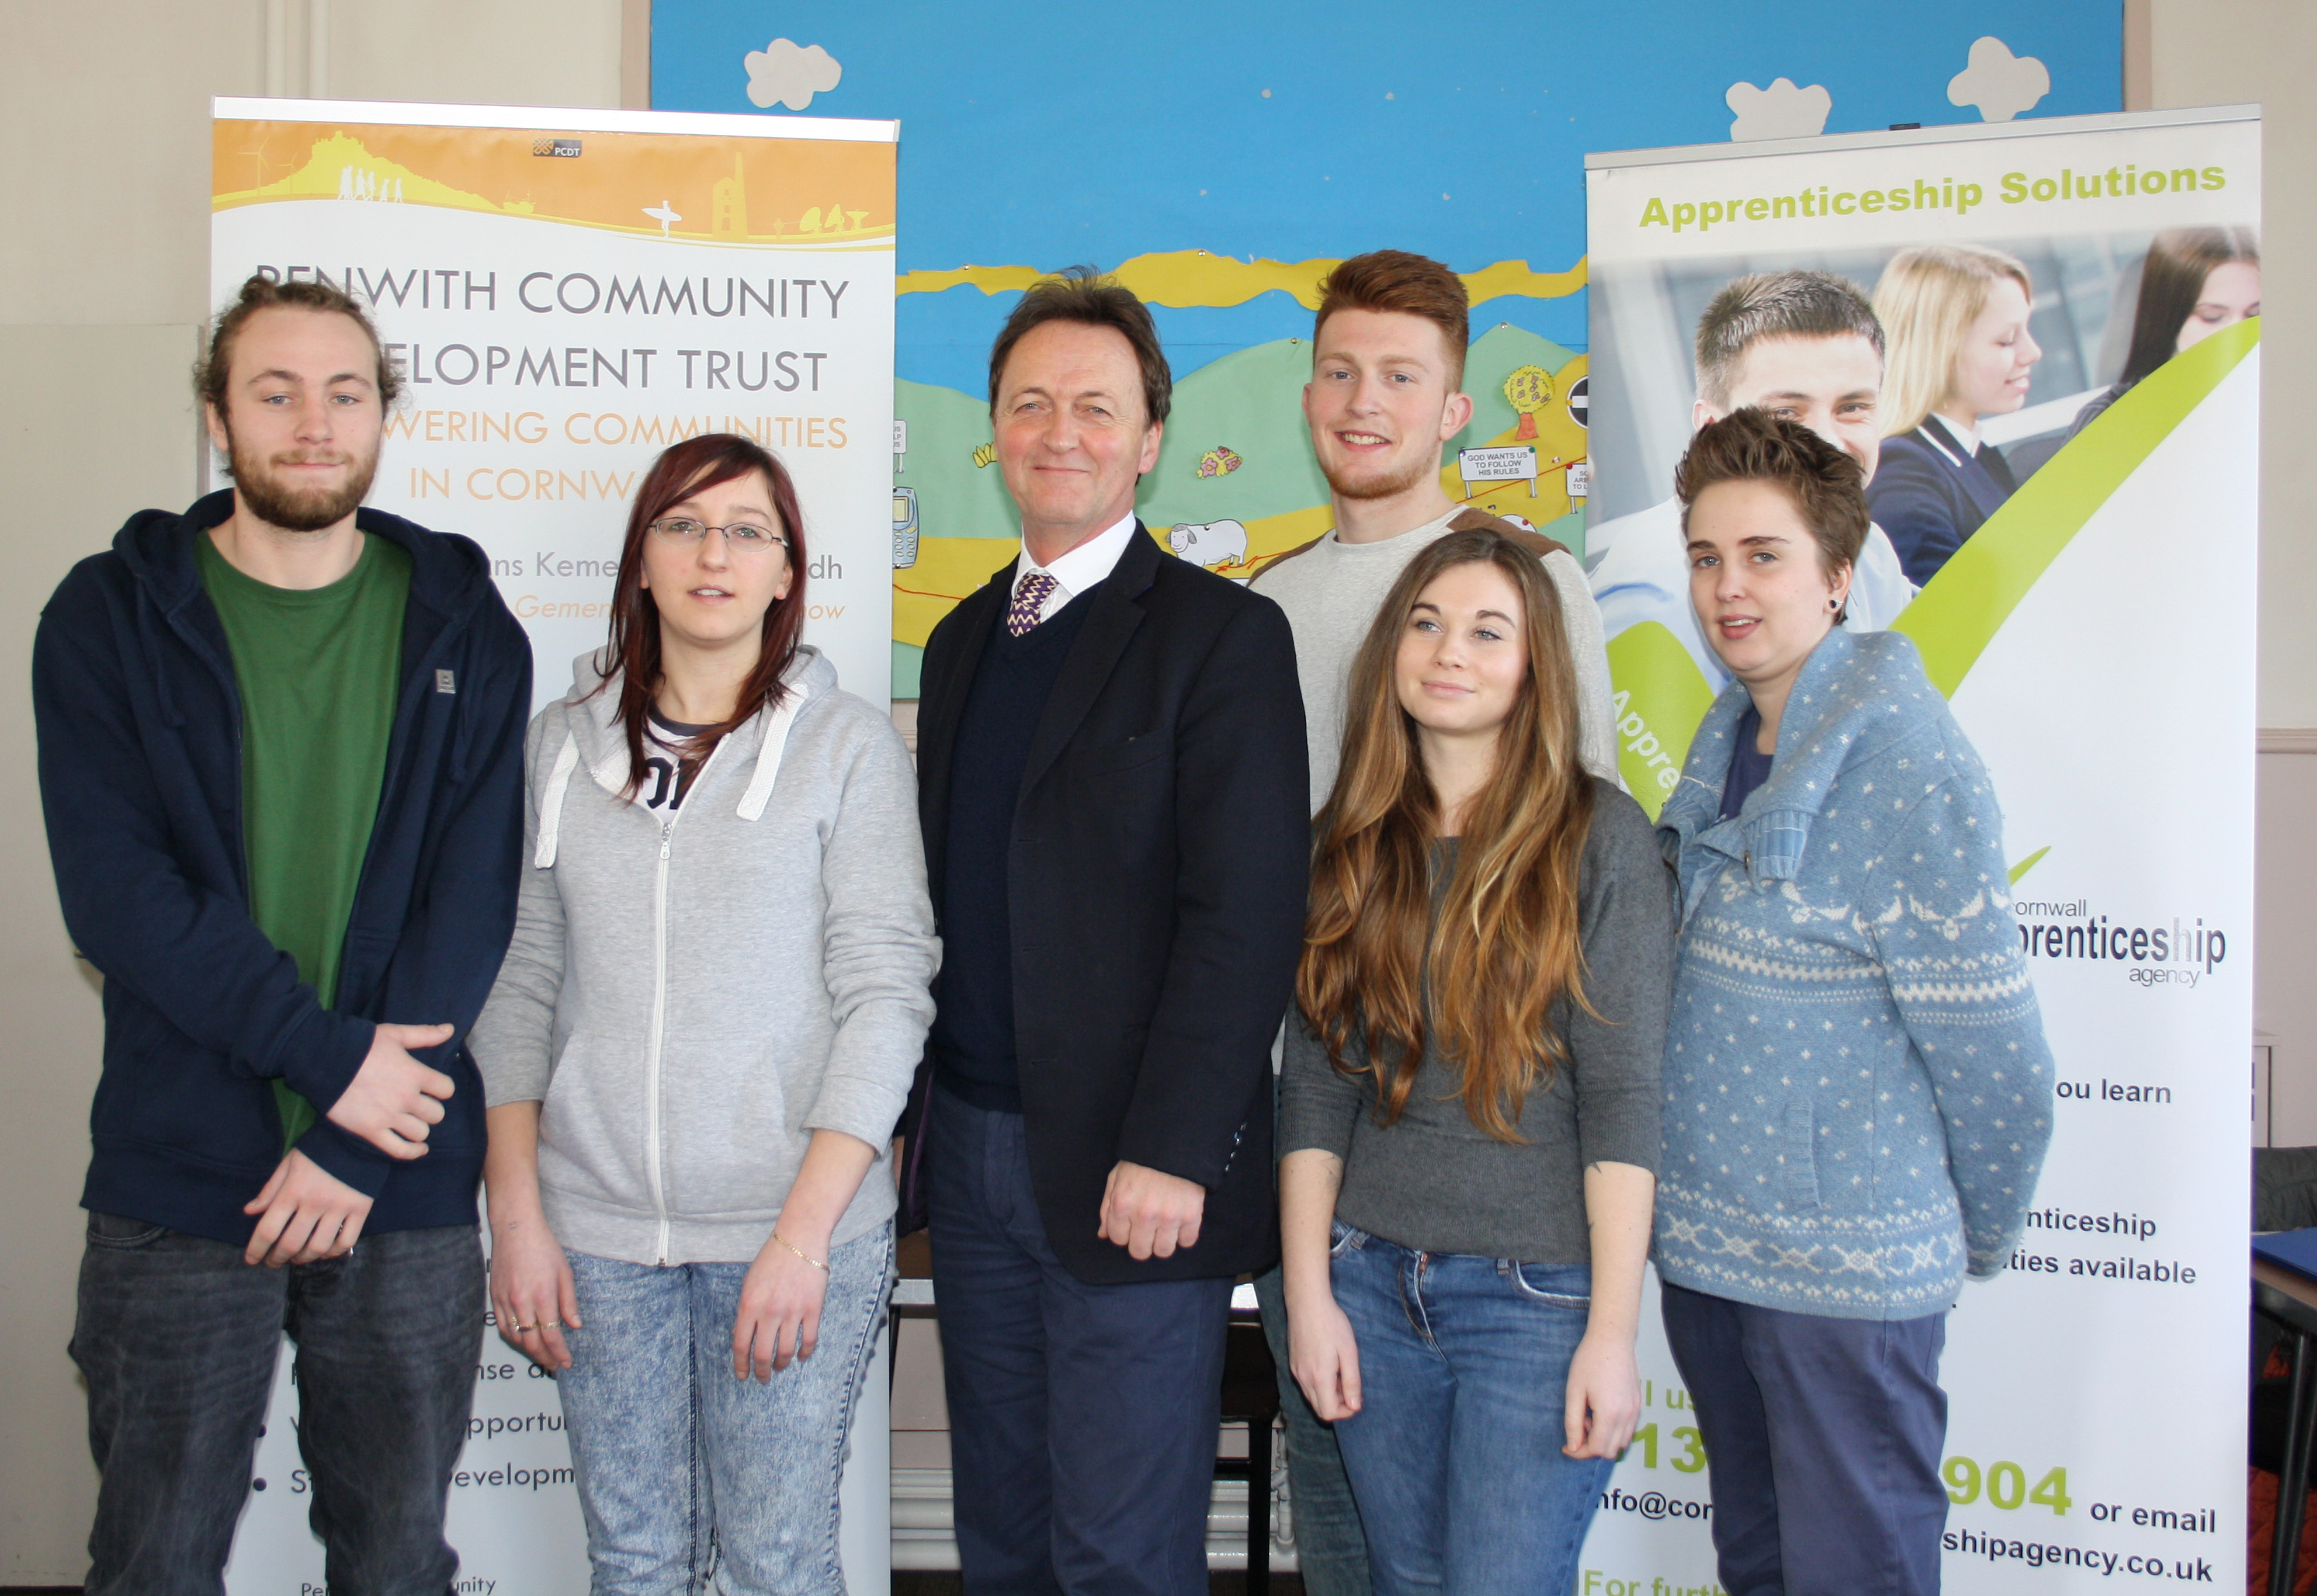 Andrew George MP and Youth Work apprentices